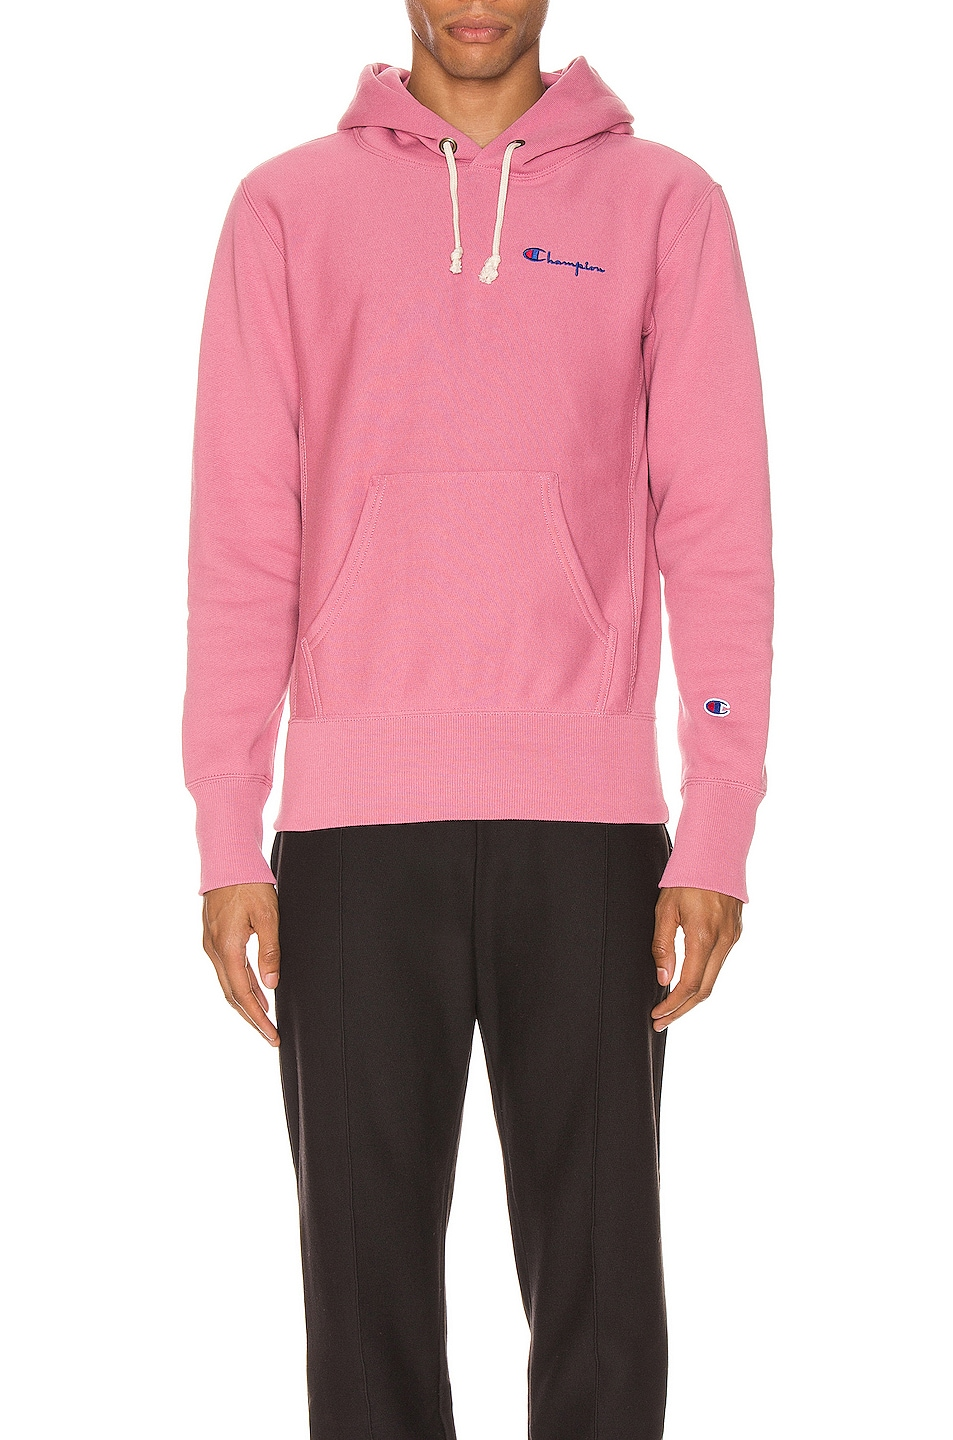 Image 1 of Champion Reverse Weave Small Script Hooded Sweatshirt in Heather Rose